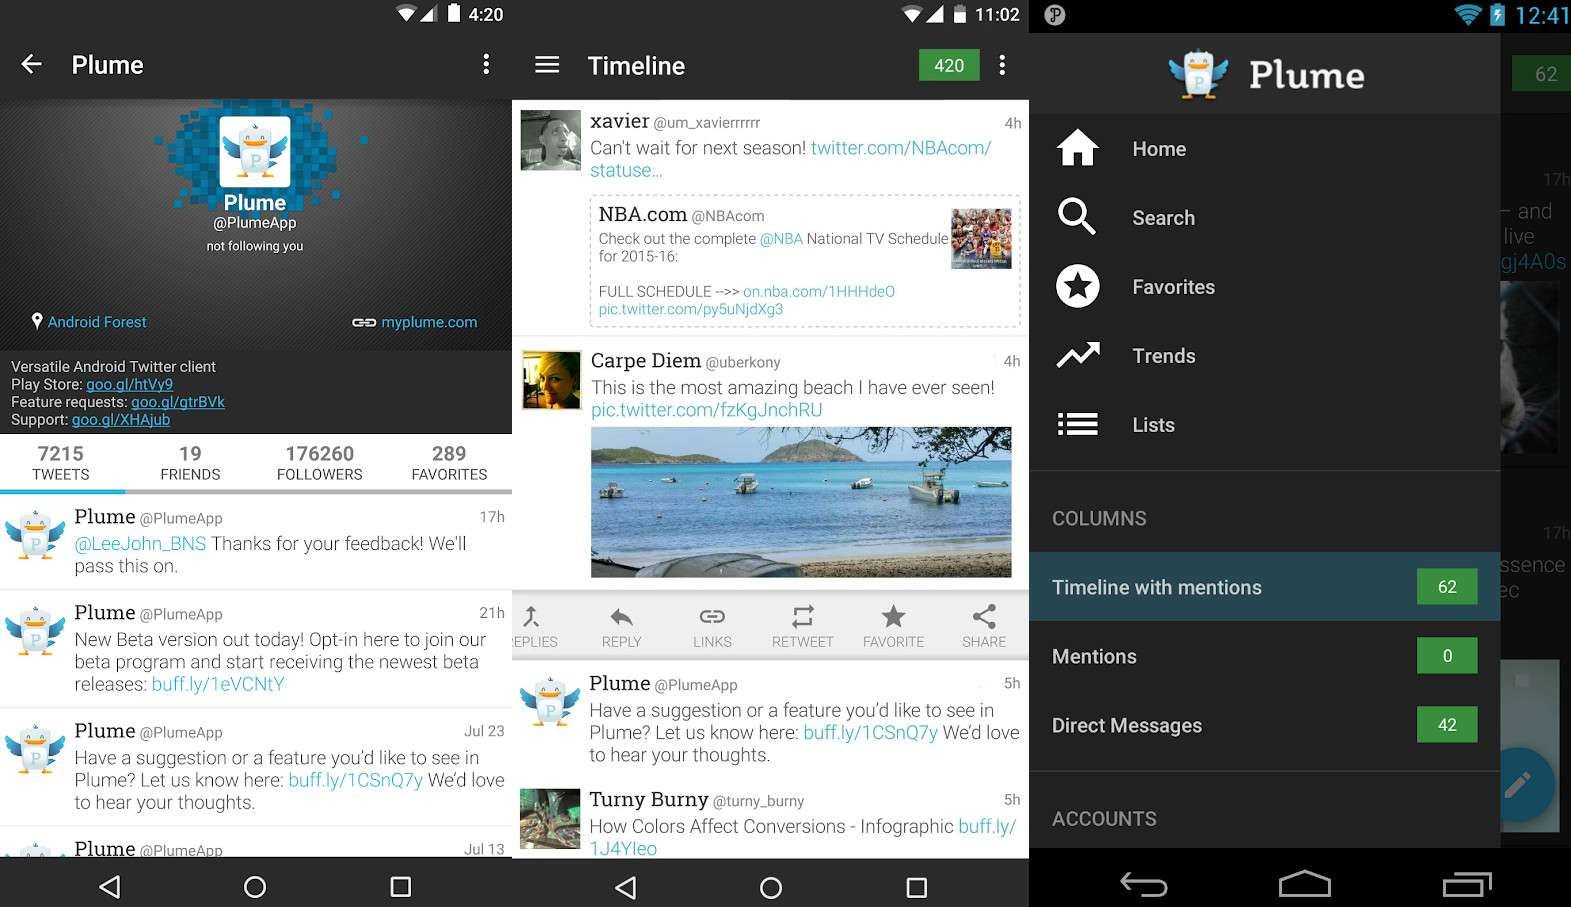 A Twitter profile and timeline using the Plume app